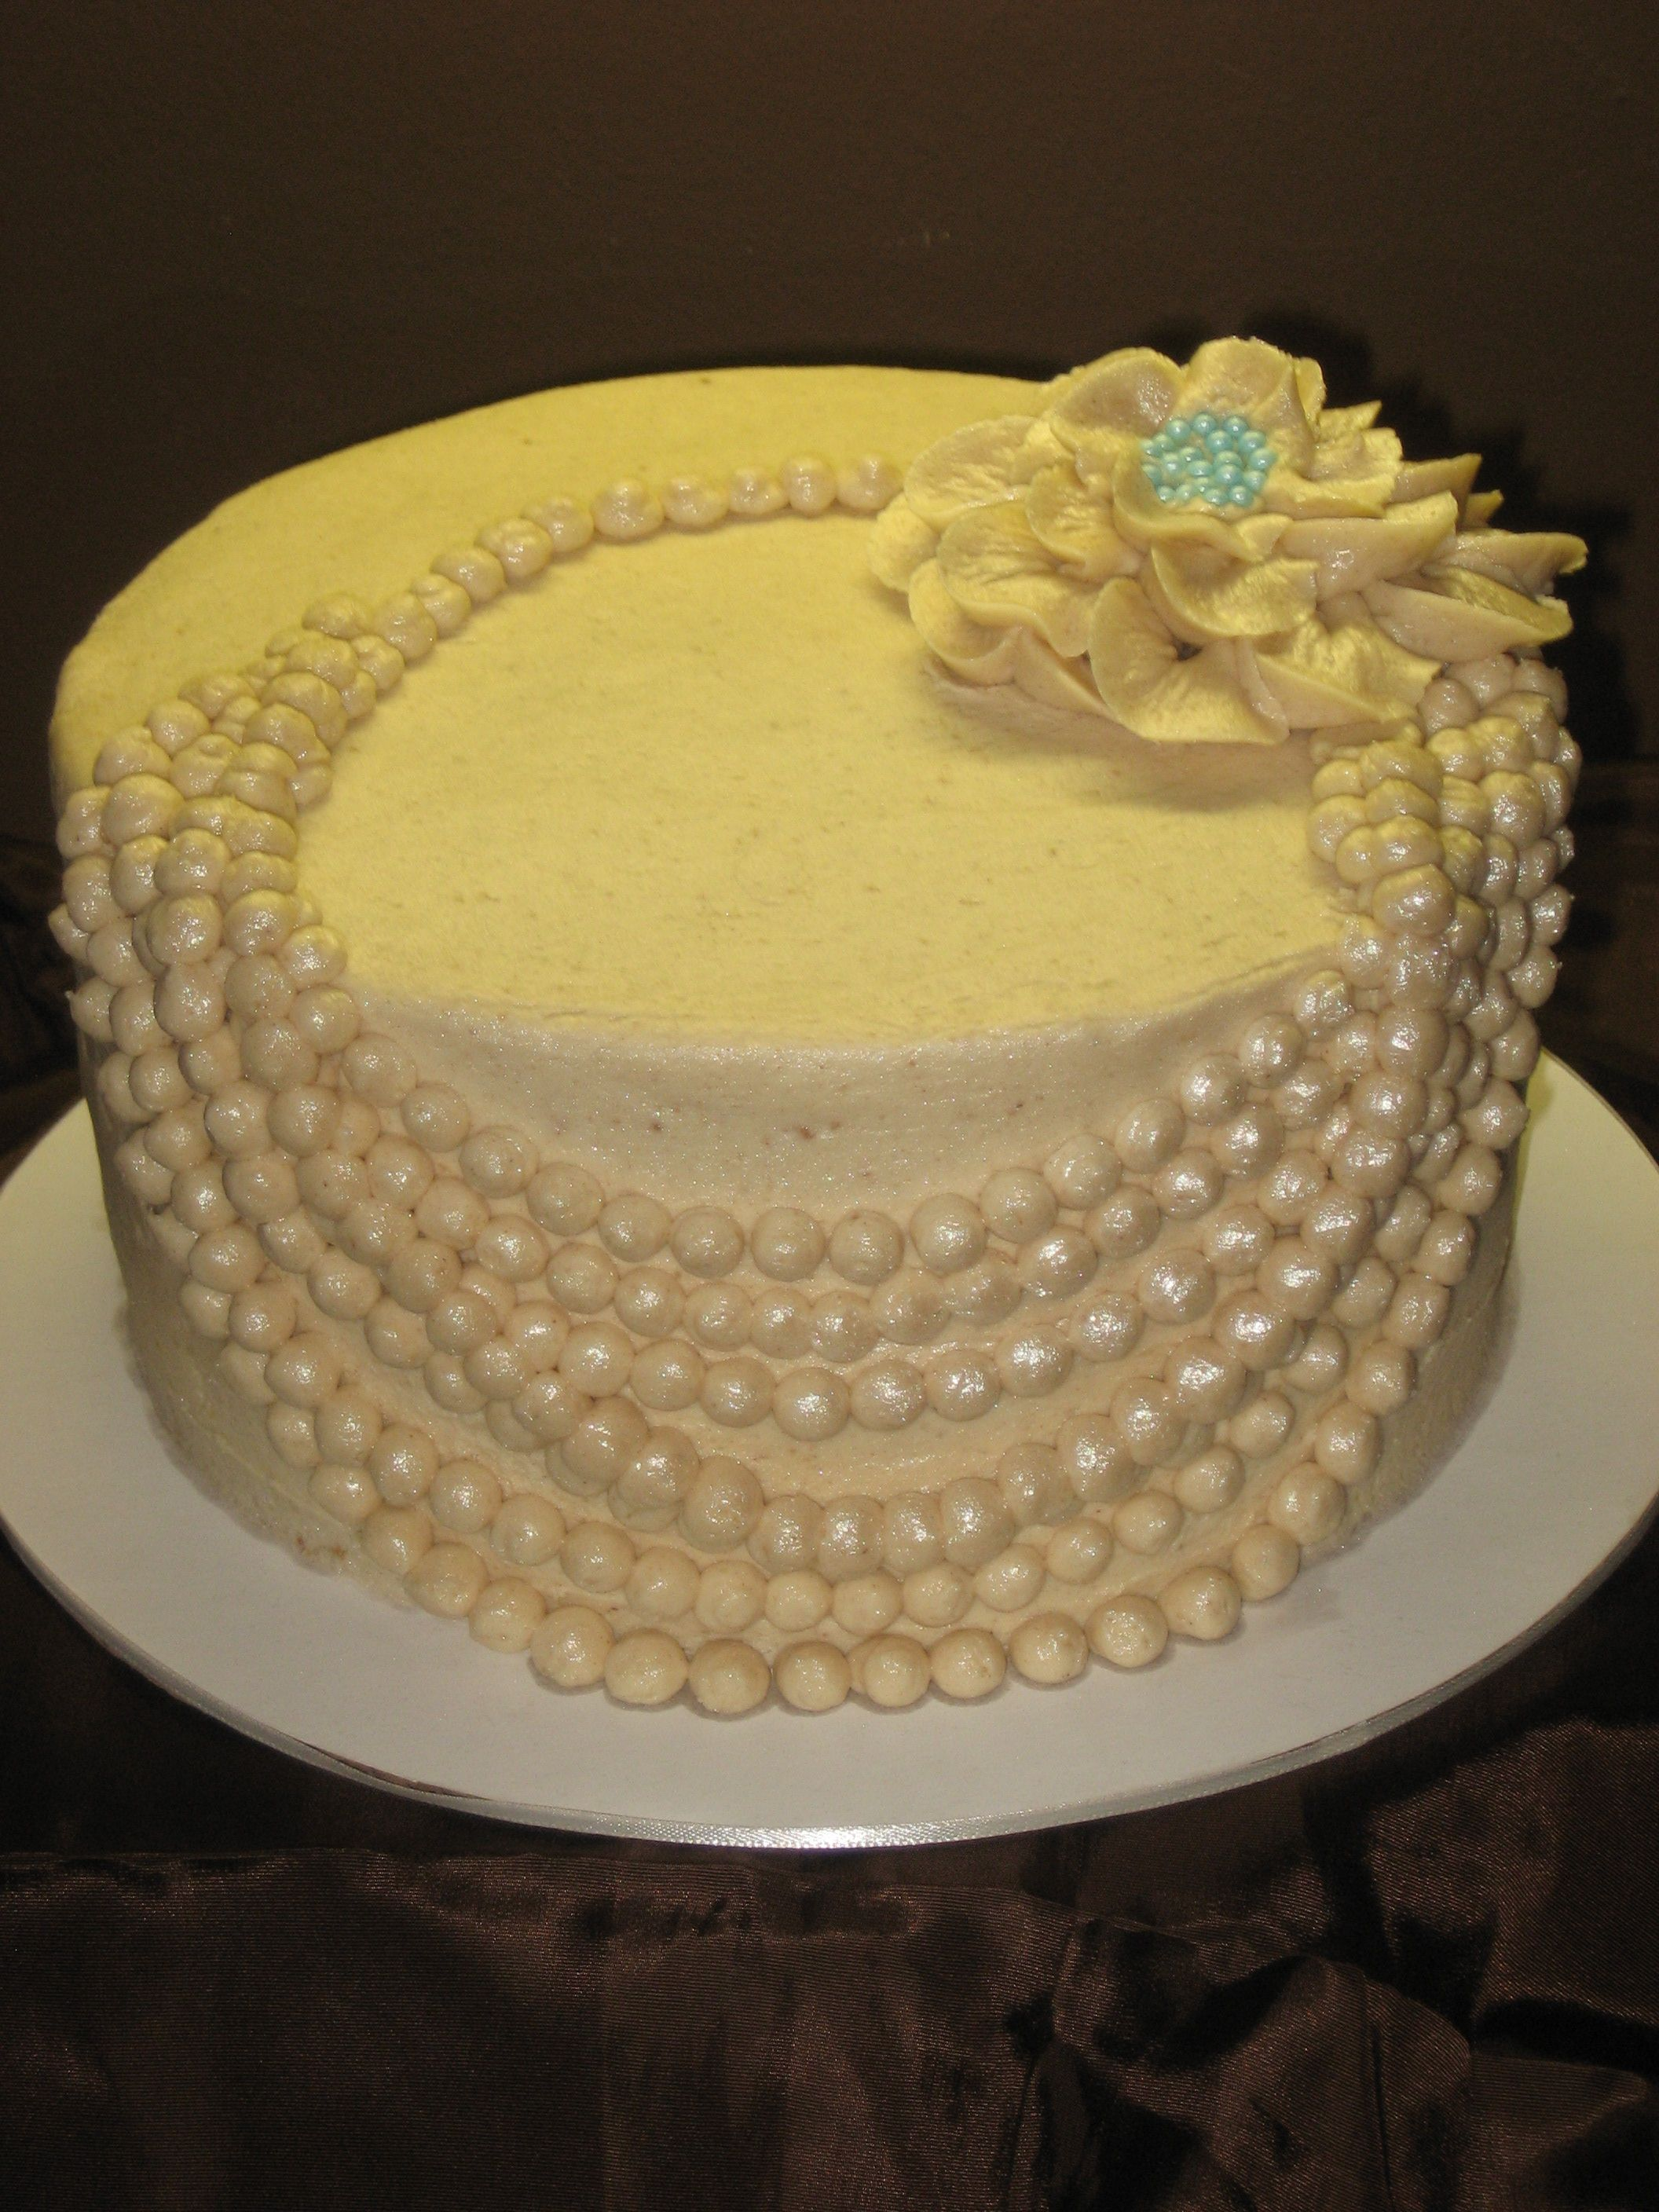 pearl necklace cake - this cake was inspired by a wedding cake I saw ...